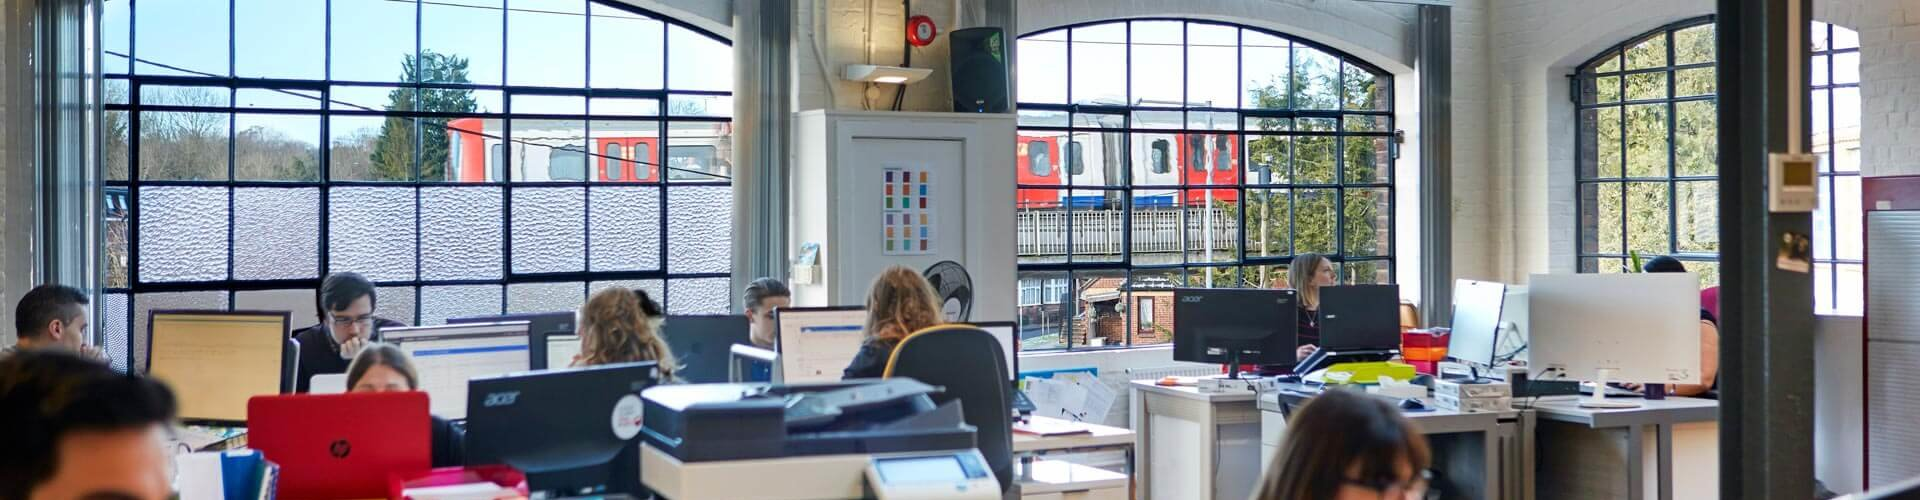 the upriseUP office featuring the tube train